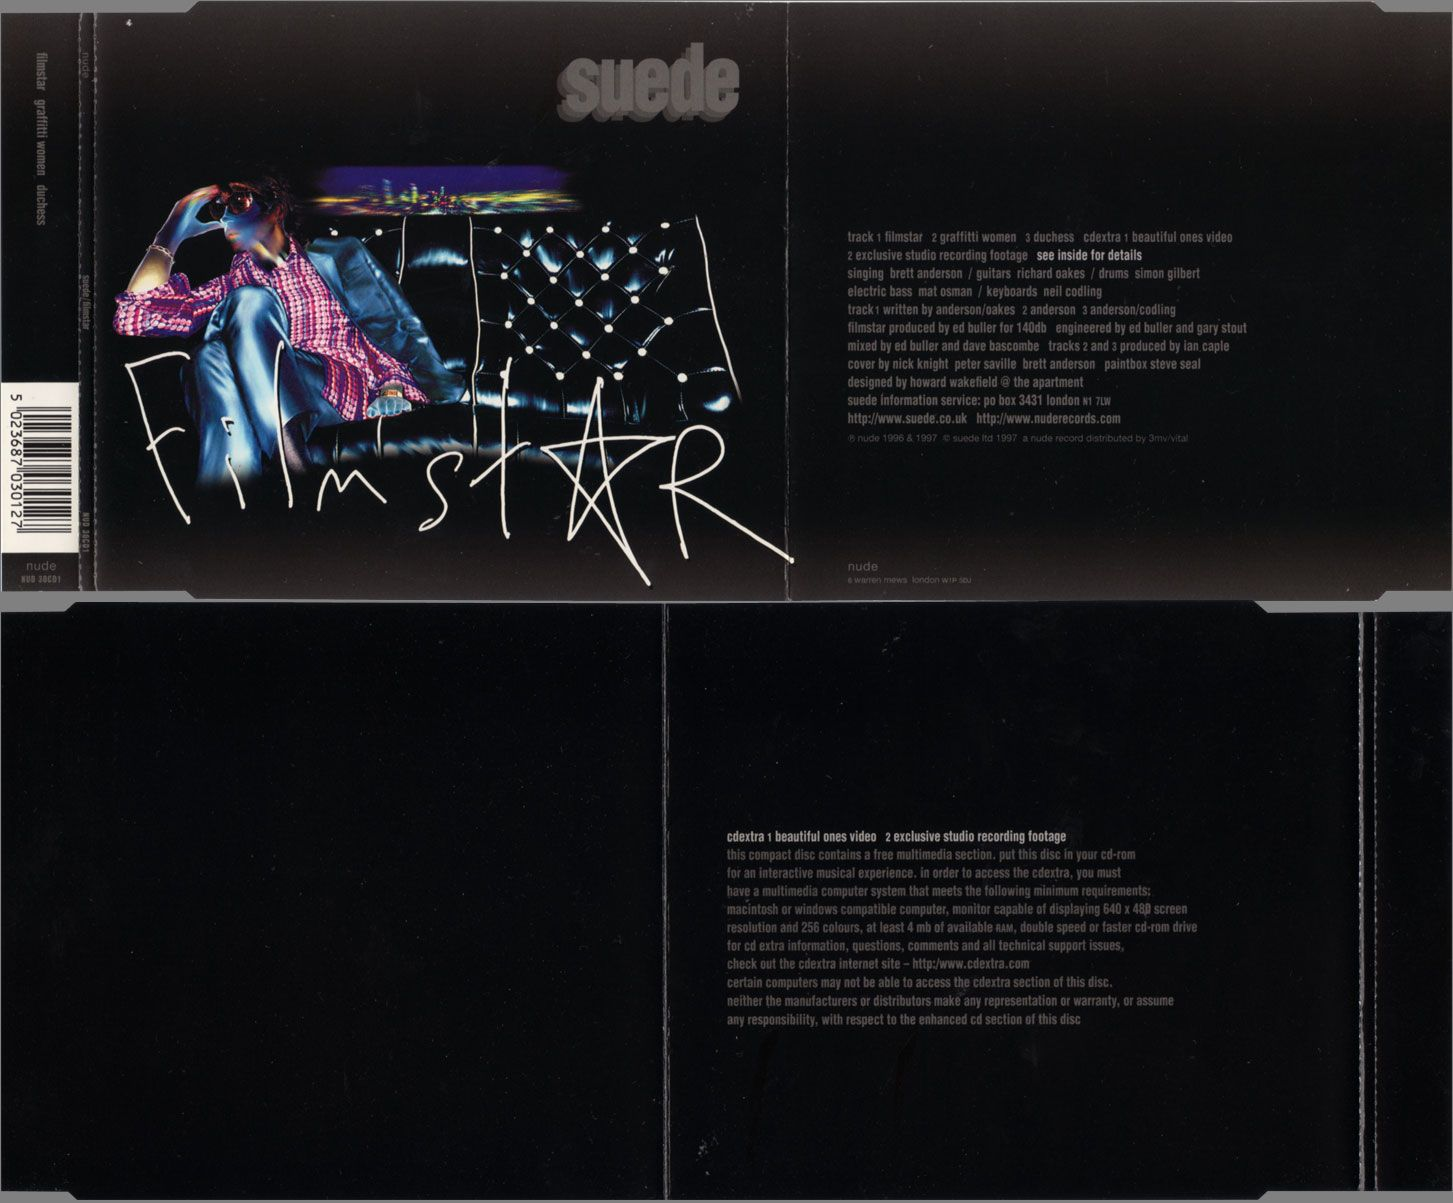 Peter Saville Sleeve Design | Sleeves 1993-1999